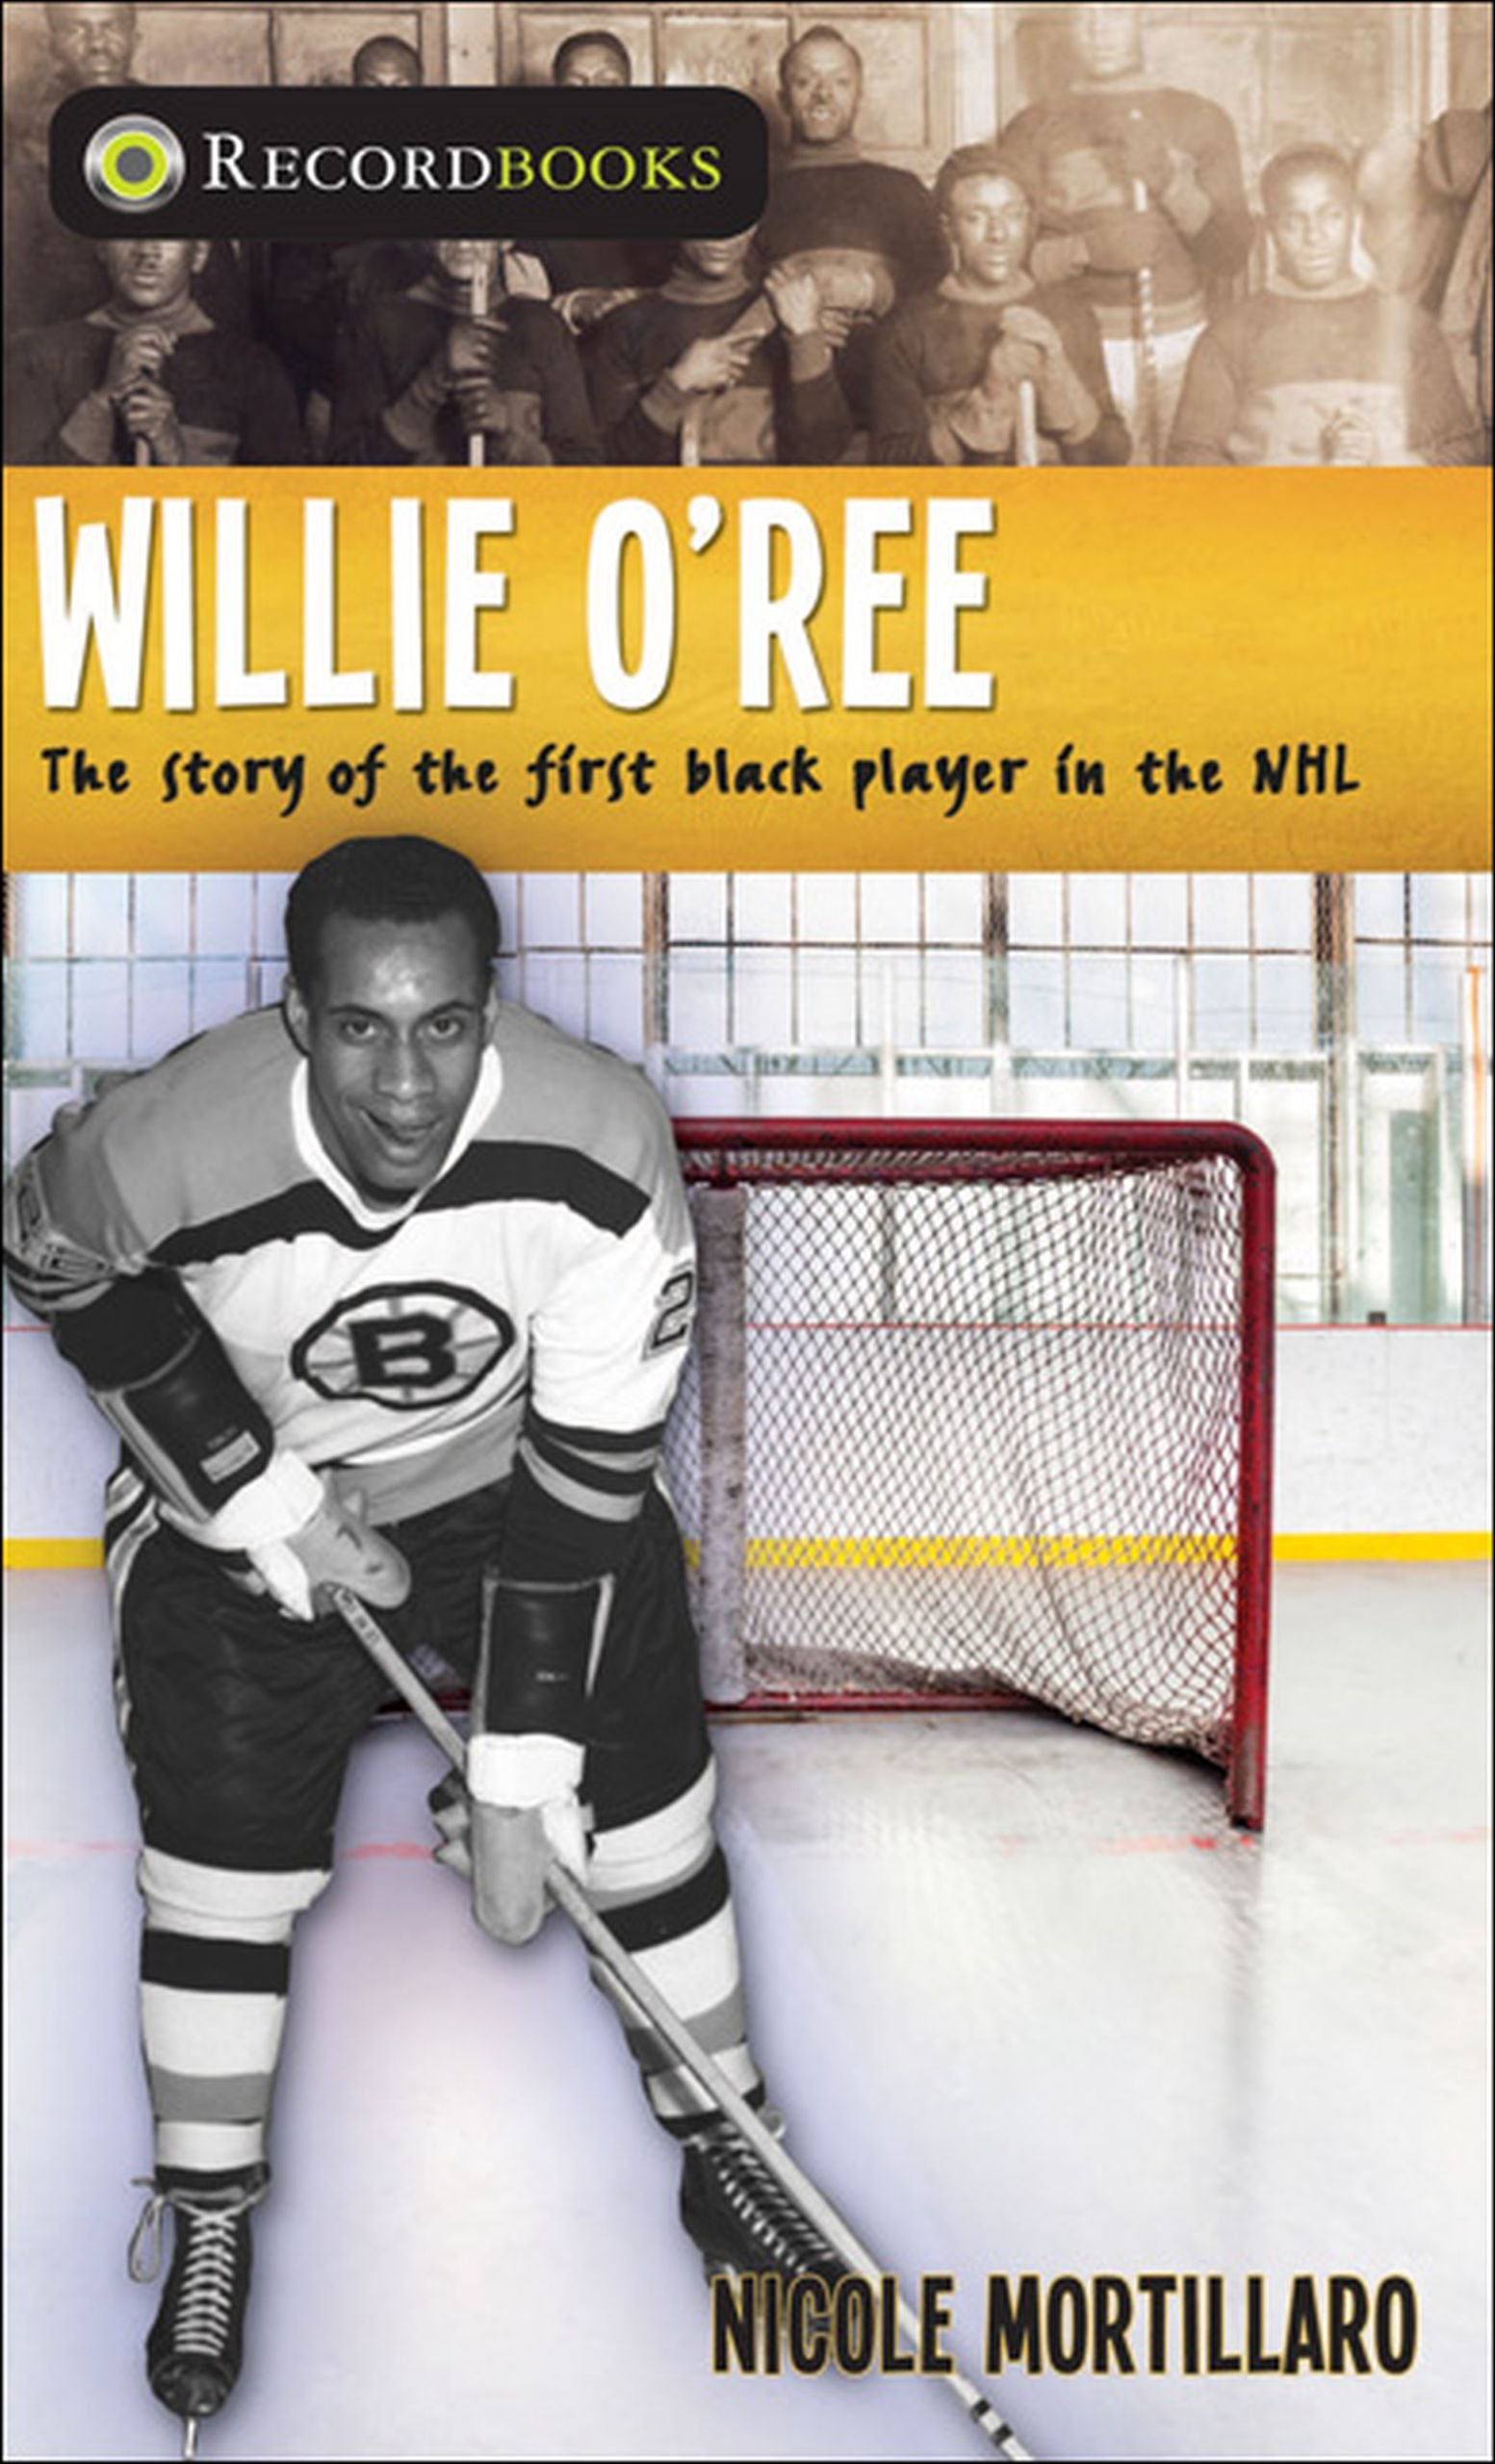 Read Online Willie O'Ree: The Story of the First Black Player in the NHL (Lorimer Recordbooks) pdf epub